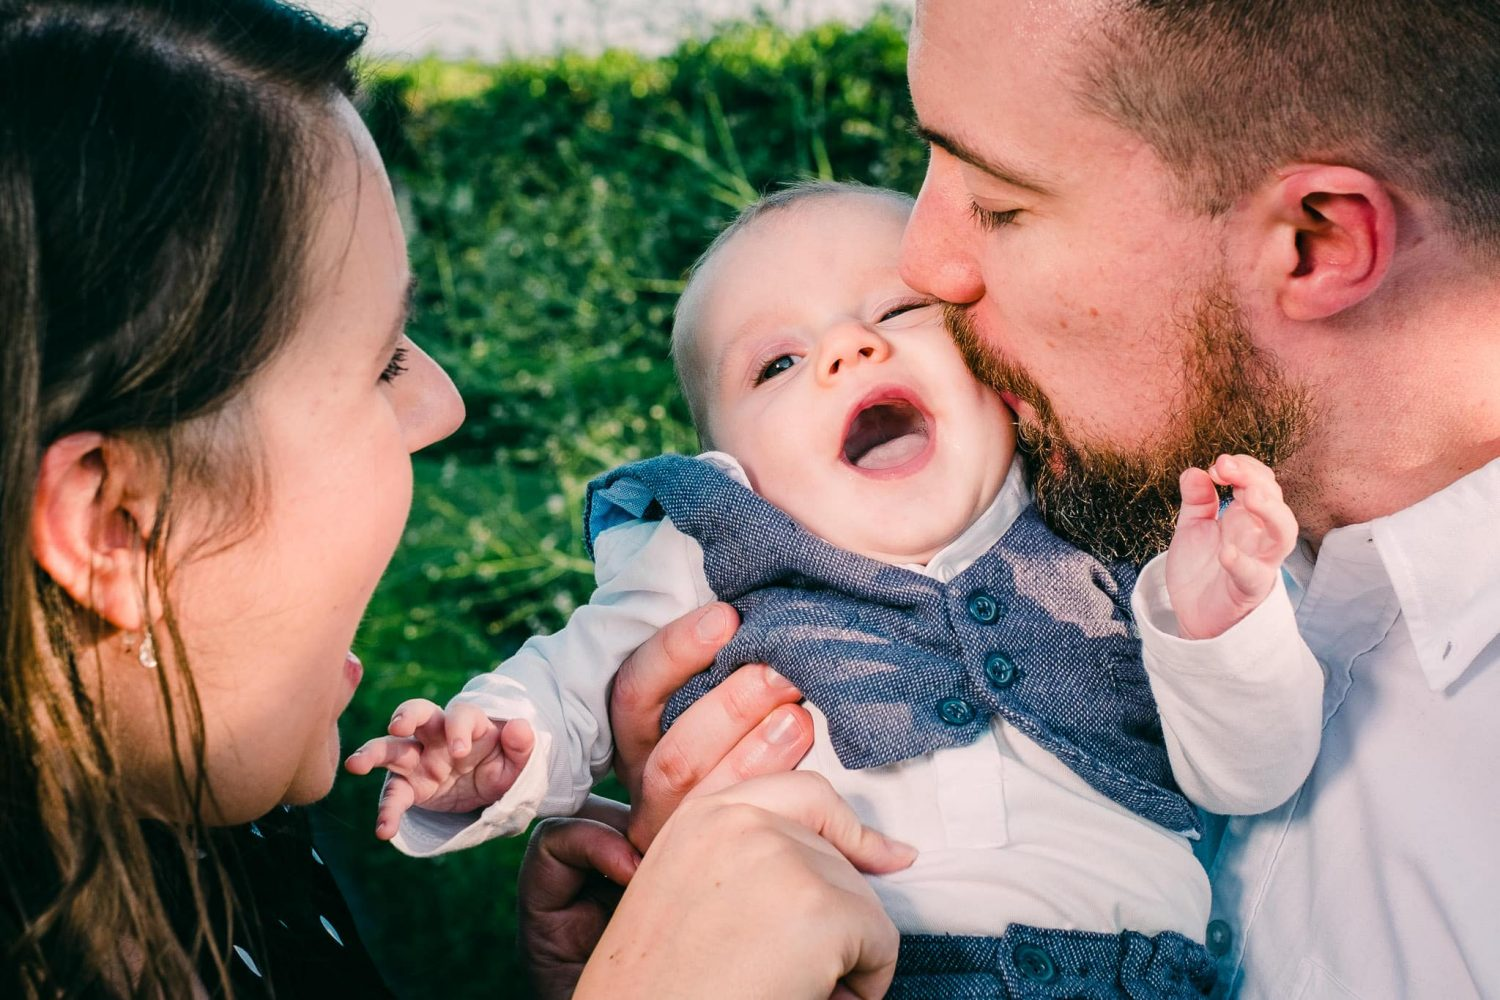 Baby boy being kissed by both parents simultaneously in Greywalls Hotel Garden